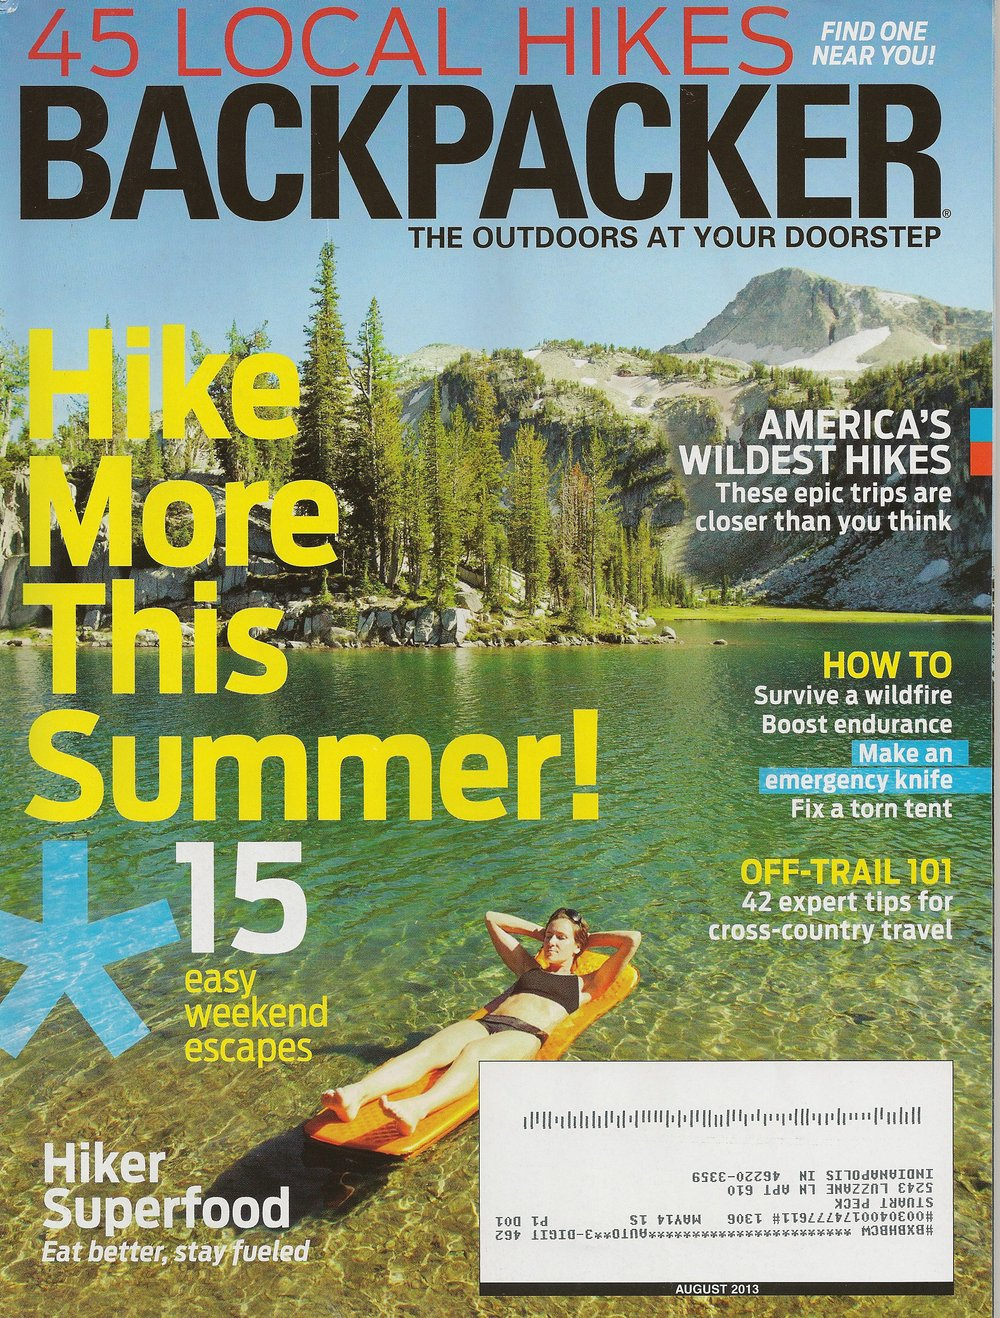 Buffalo River Trail     BACKPACKER magazine - August 2013